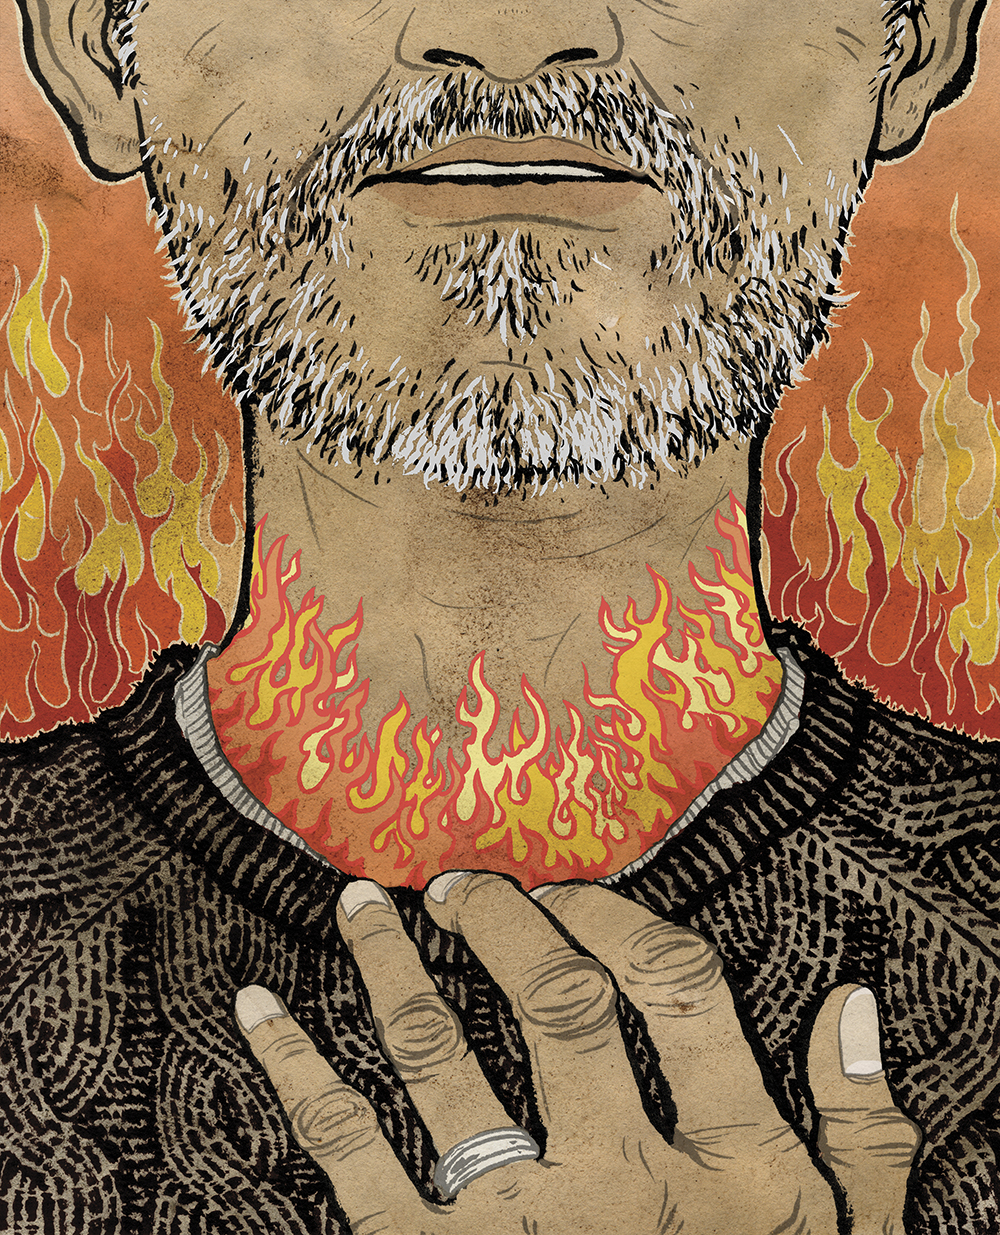 An illustration of a middle-aged man who's throat feels like it's on fire, an early symptom of throat cancer after being exposed to HPV.